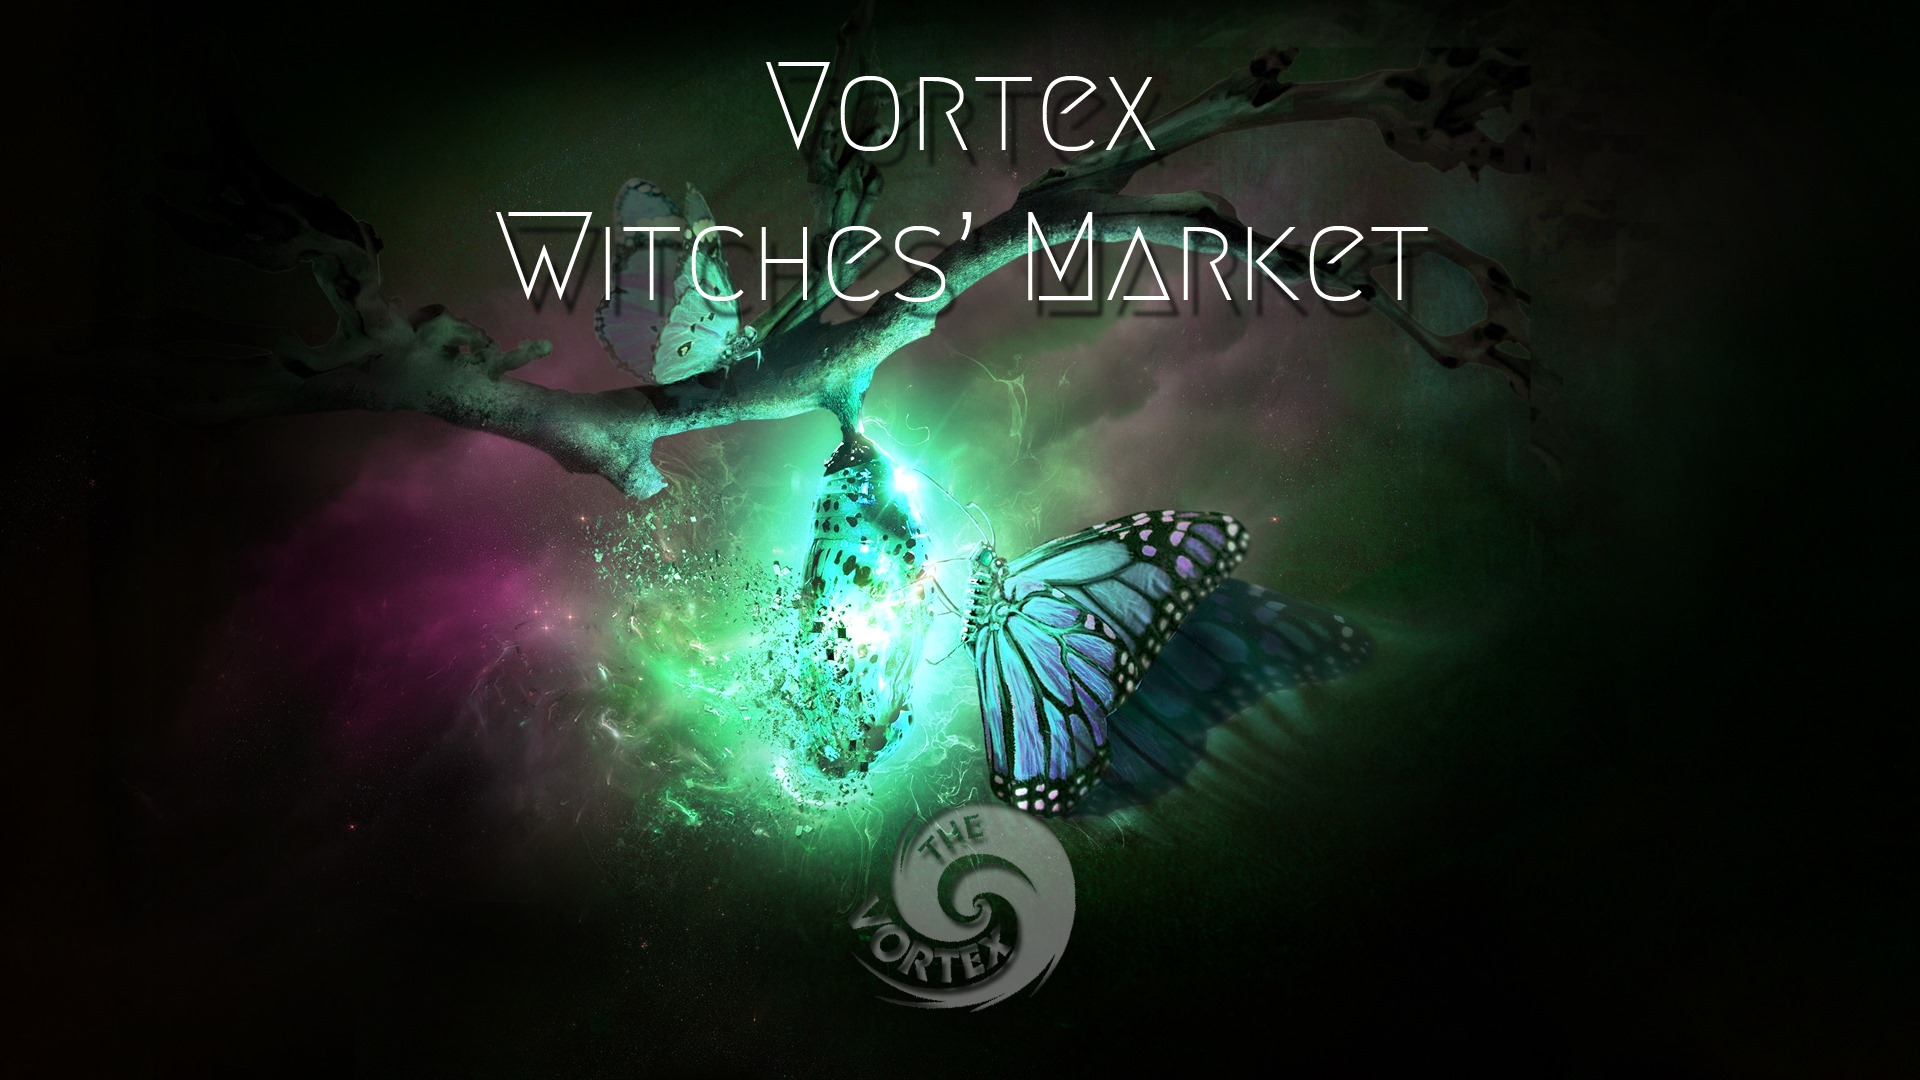 Vortex Witches' Market